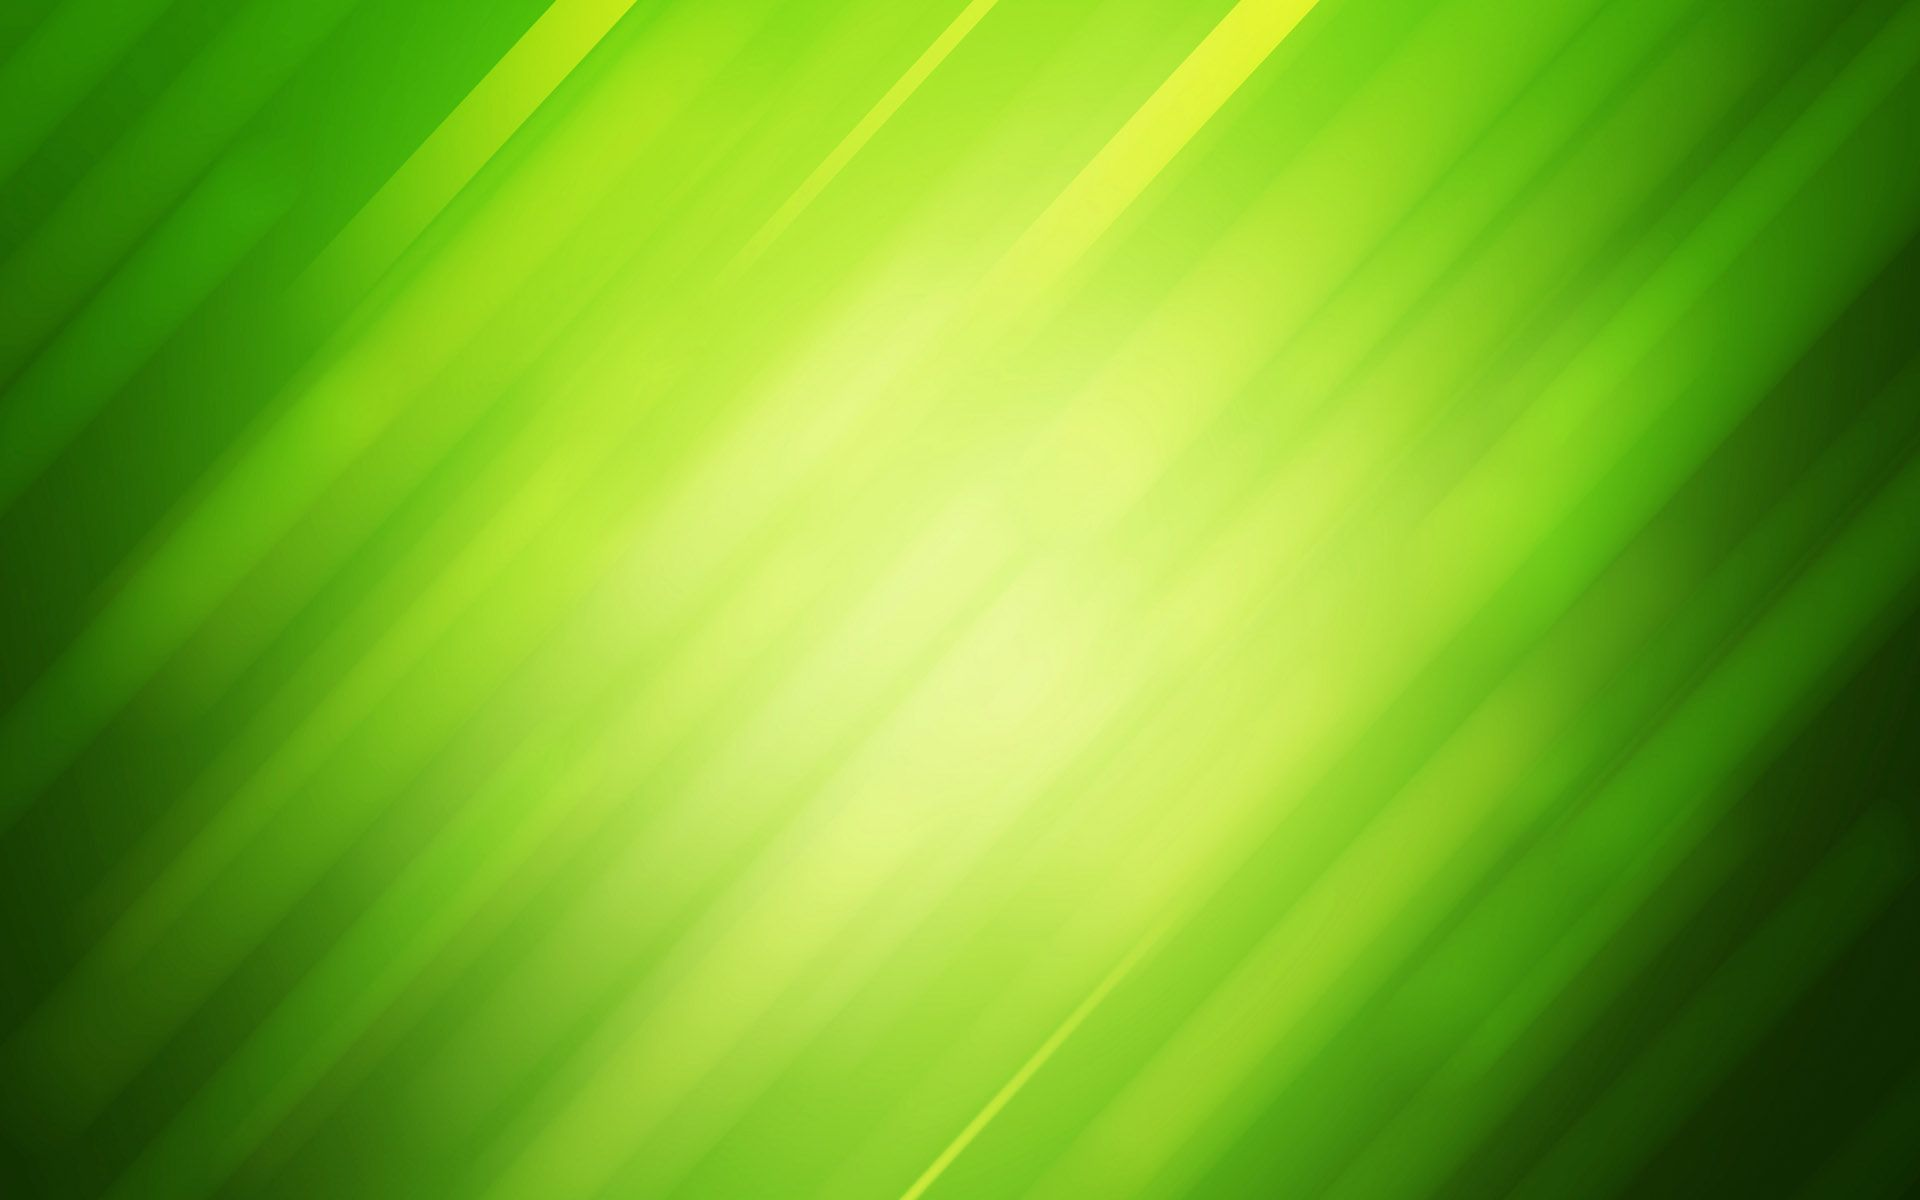 Background Color Wallpaper High Colorful Wallpapers Ibackgroundz Green Wallpaper Green Backgrounds Colorful Wallpaper